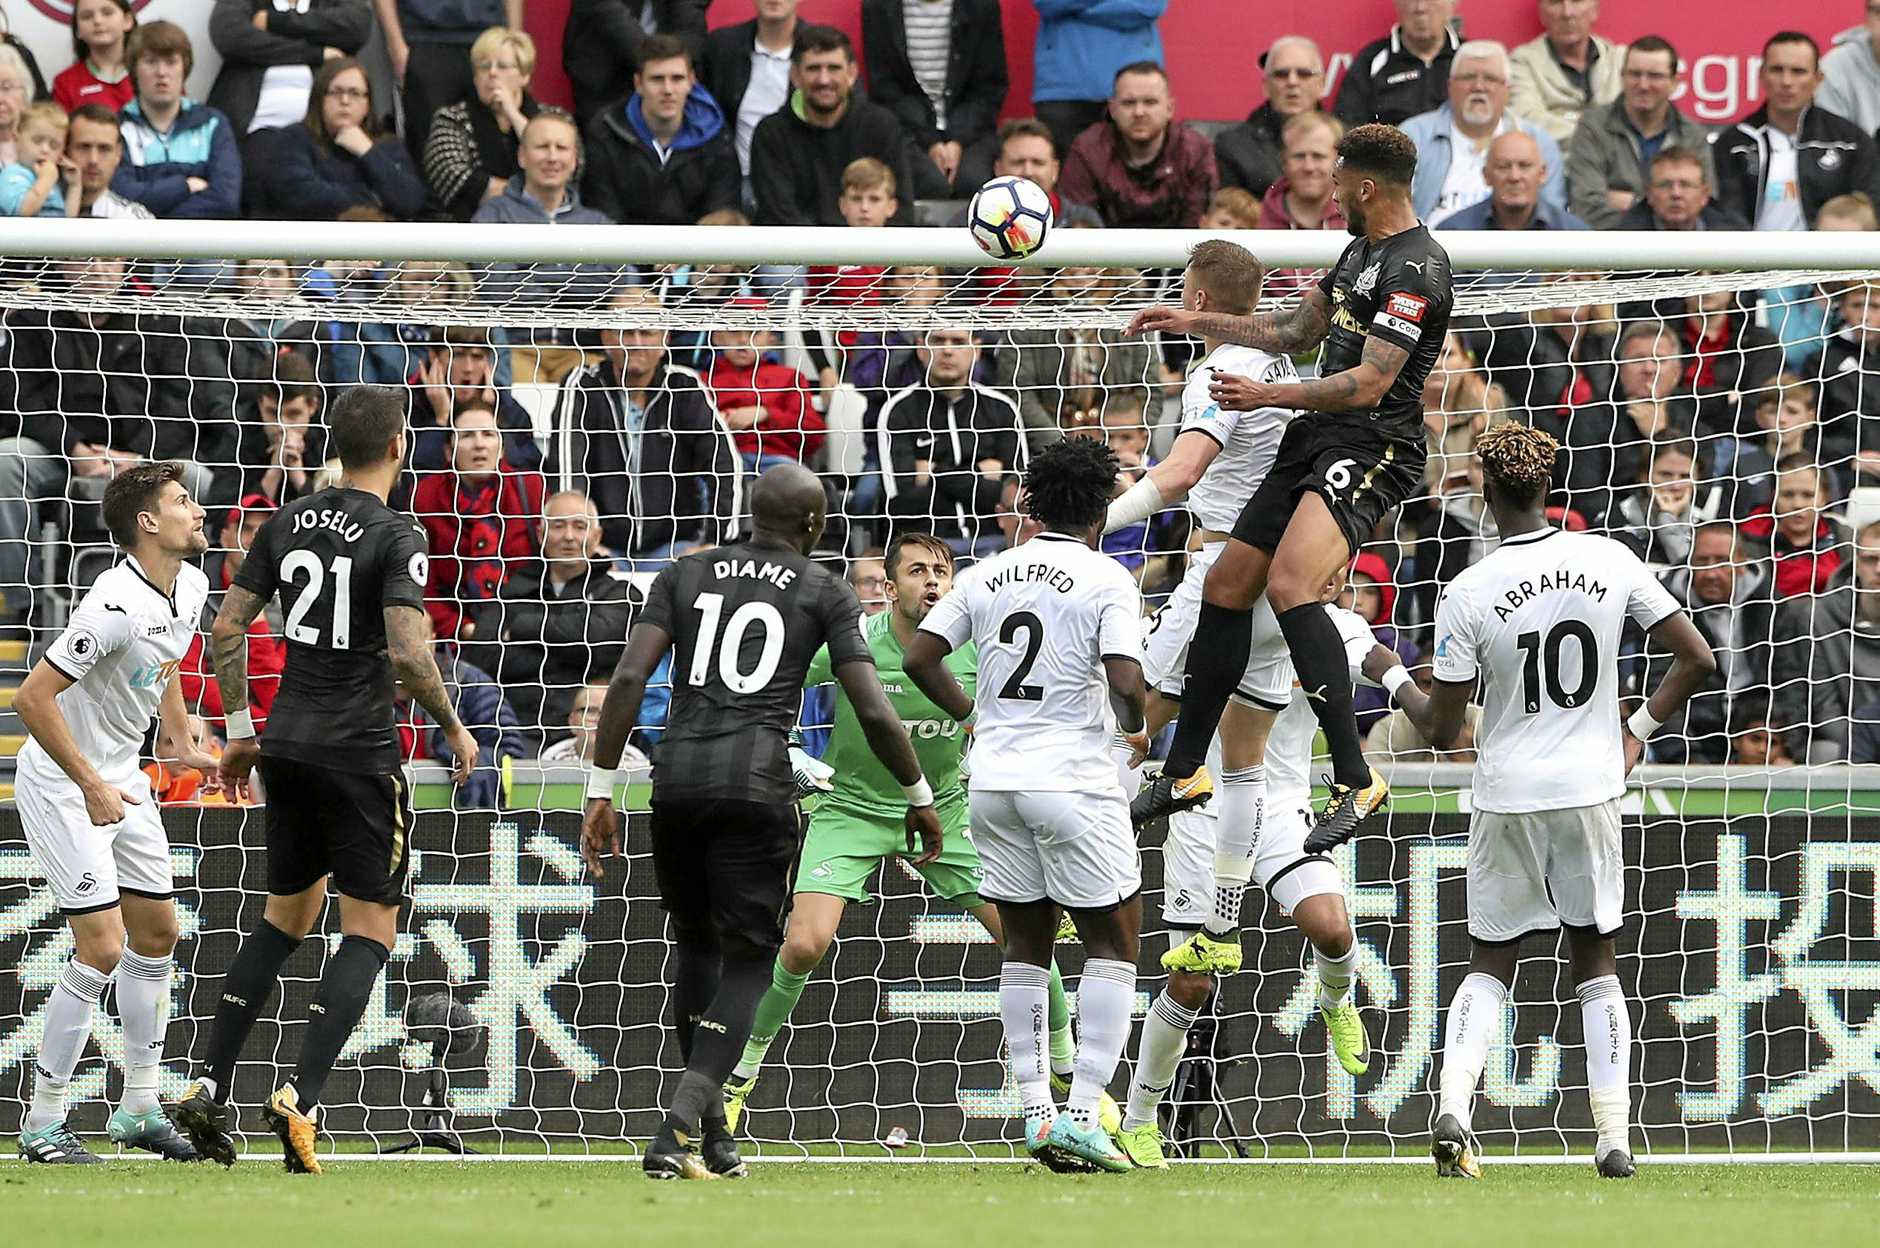 Newcastle United's Jamaal Lascelles, top right, scores against Swansea City in his side's 1-0 win.